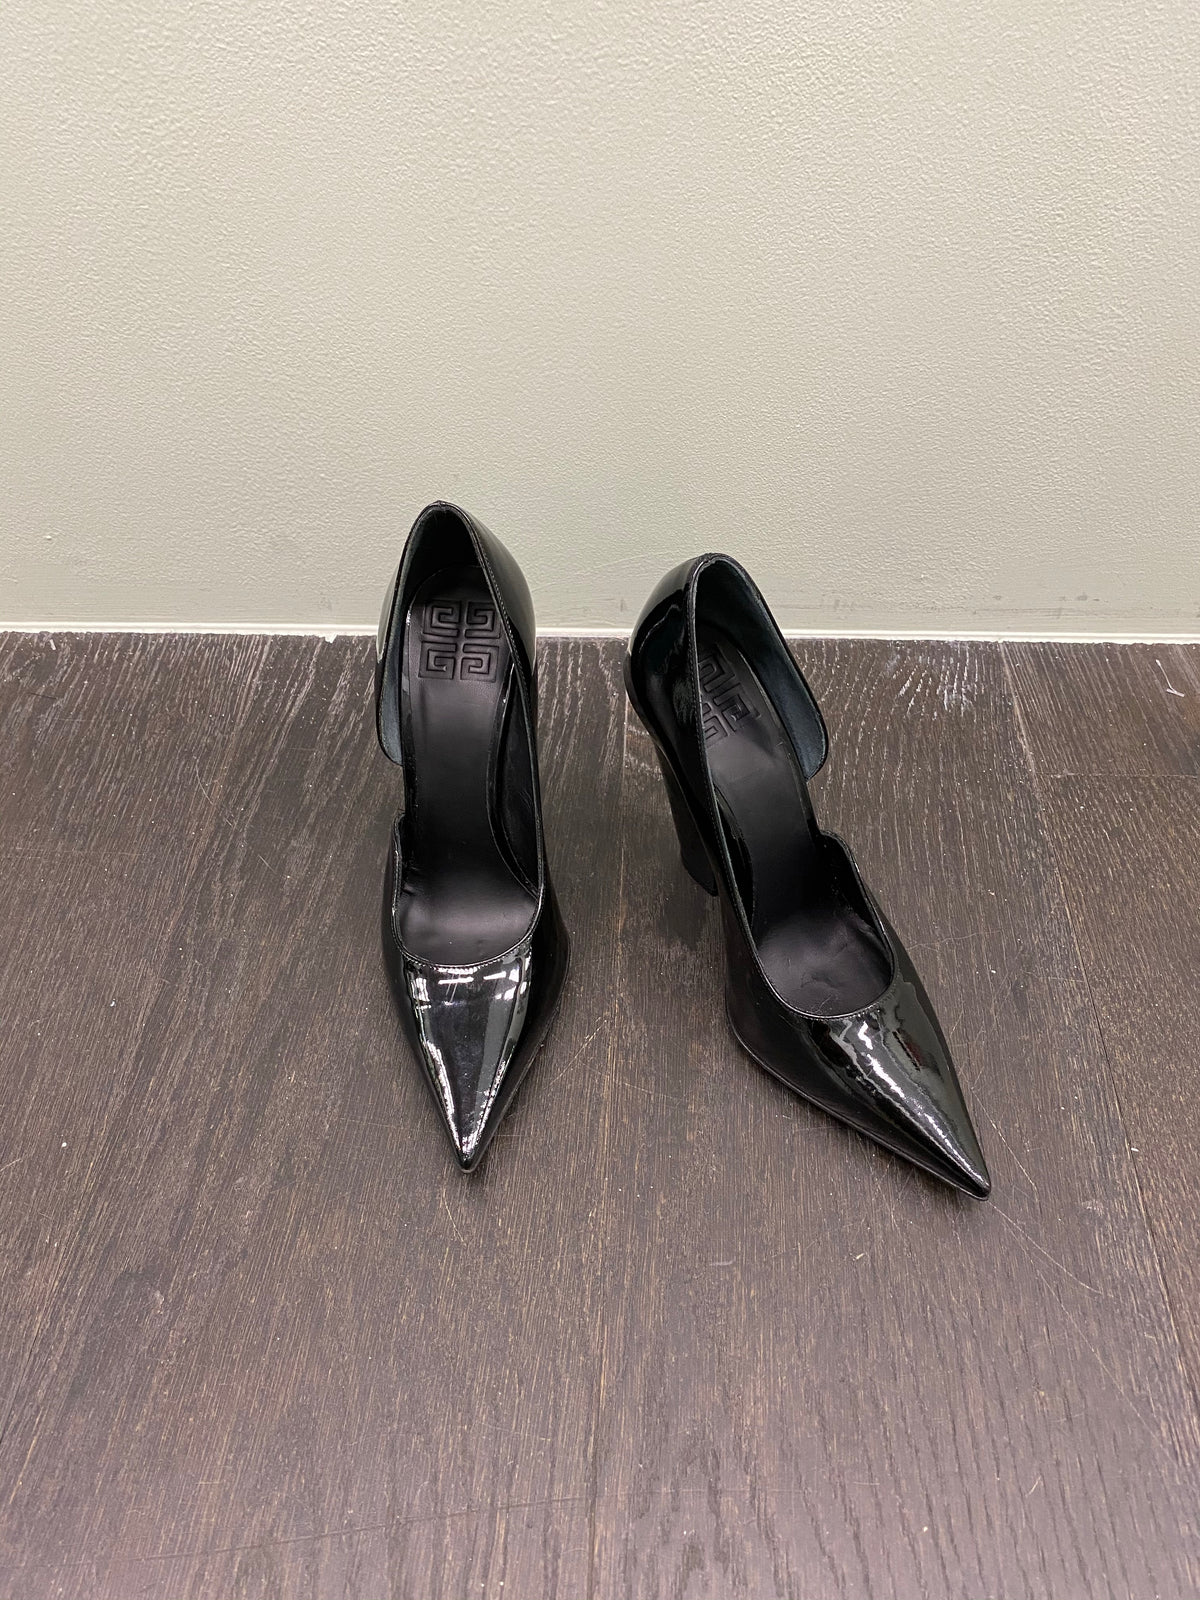 Givenchy Striking Pointed Heels